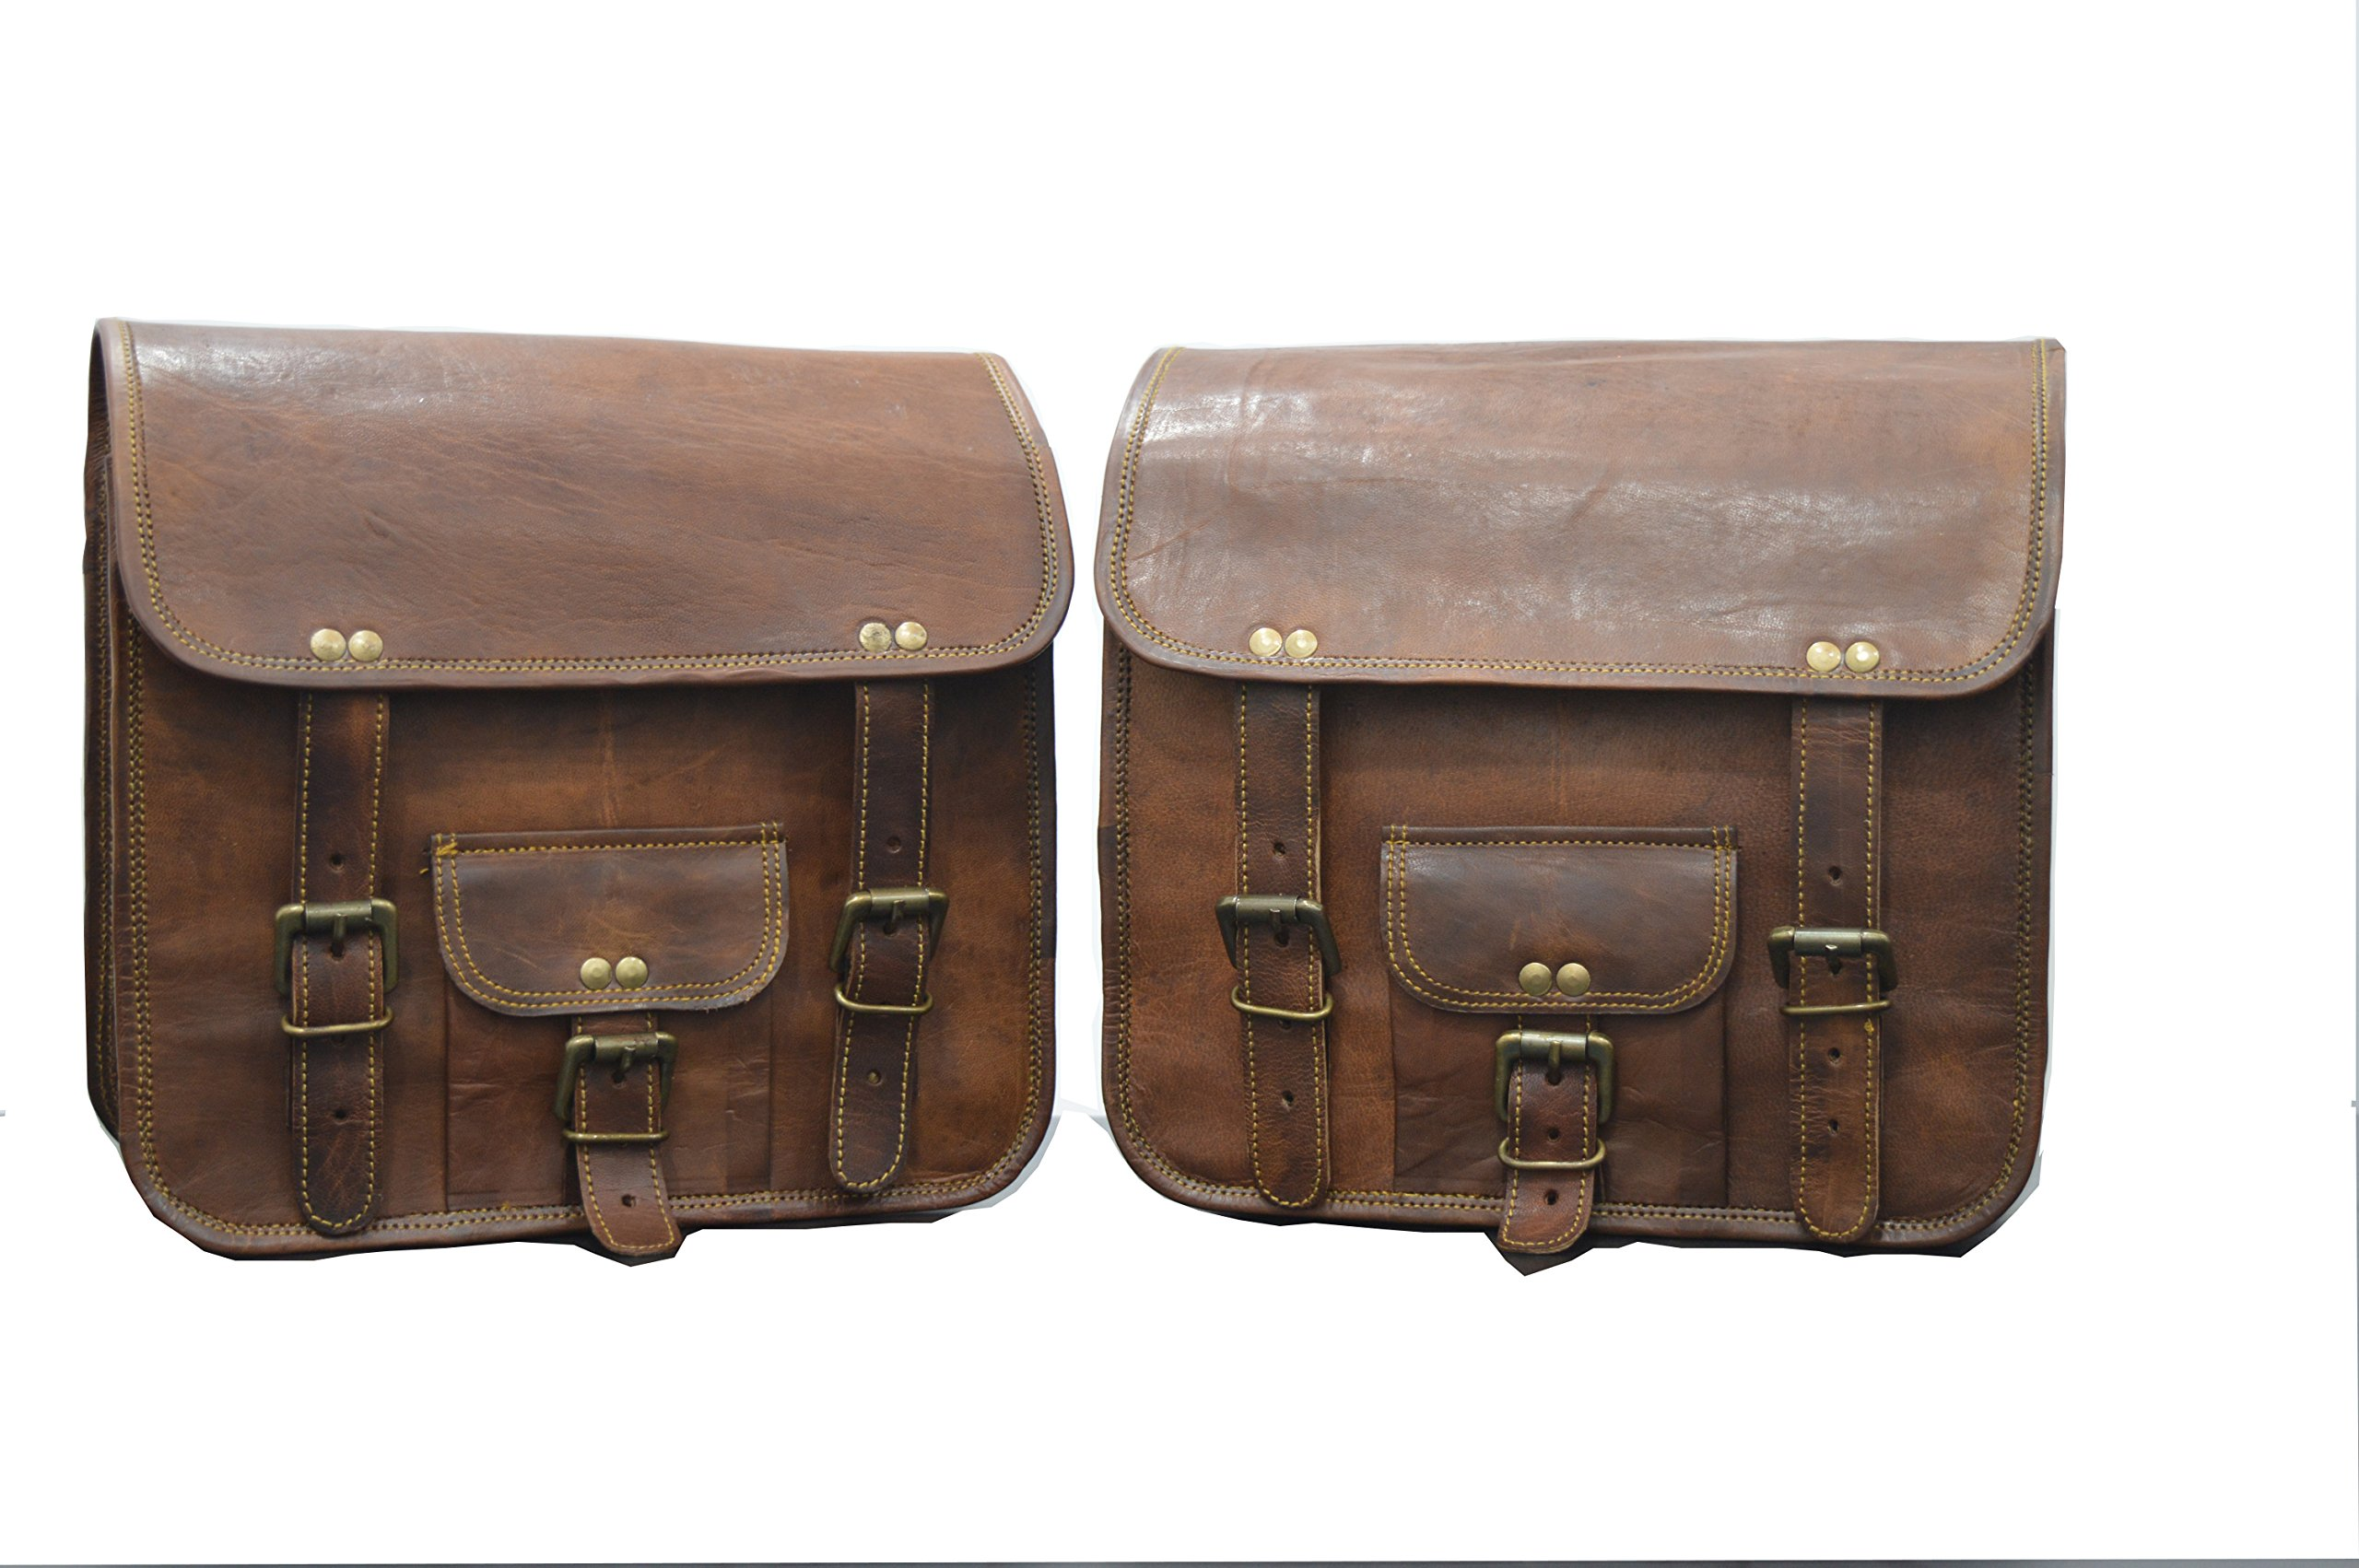 Handmade Bag Wala Saddle Bags Motorcycle Two Side Pouch Brown Leather Pouch Saddle Panniers (2 Bags)